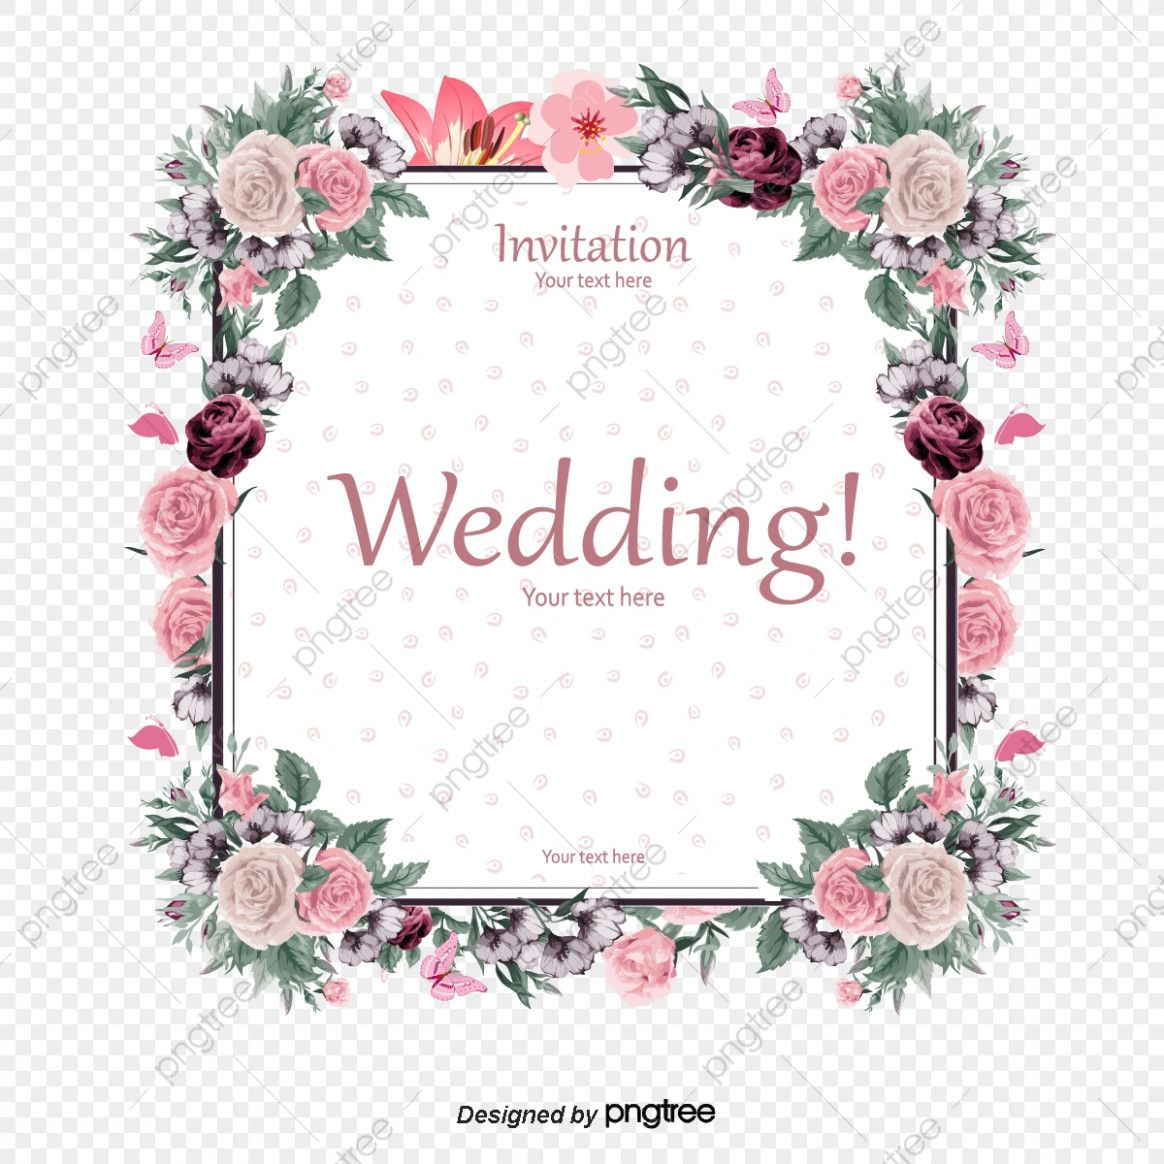 Download Wedding Card Flower Images Download Wedding Card Flower